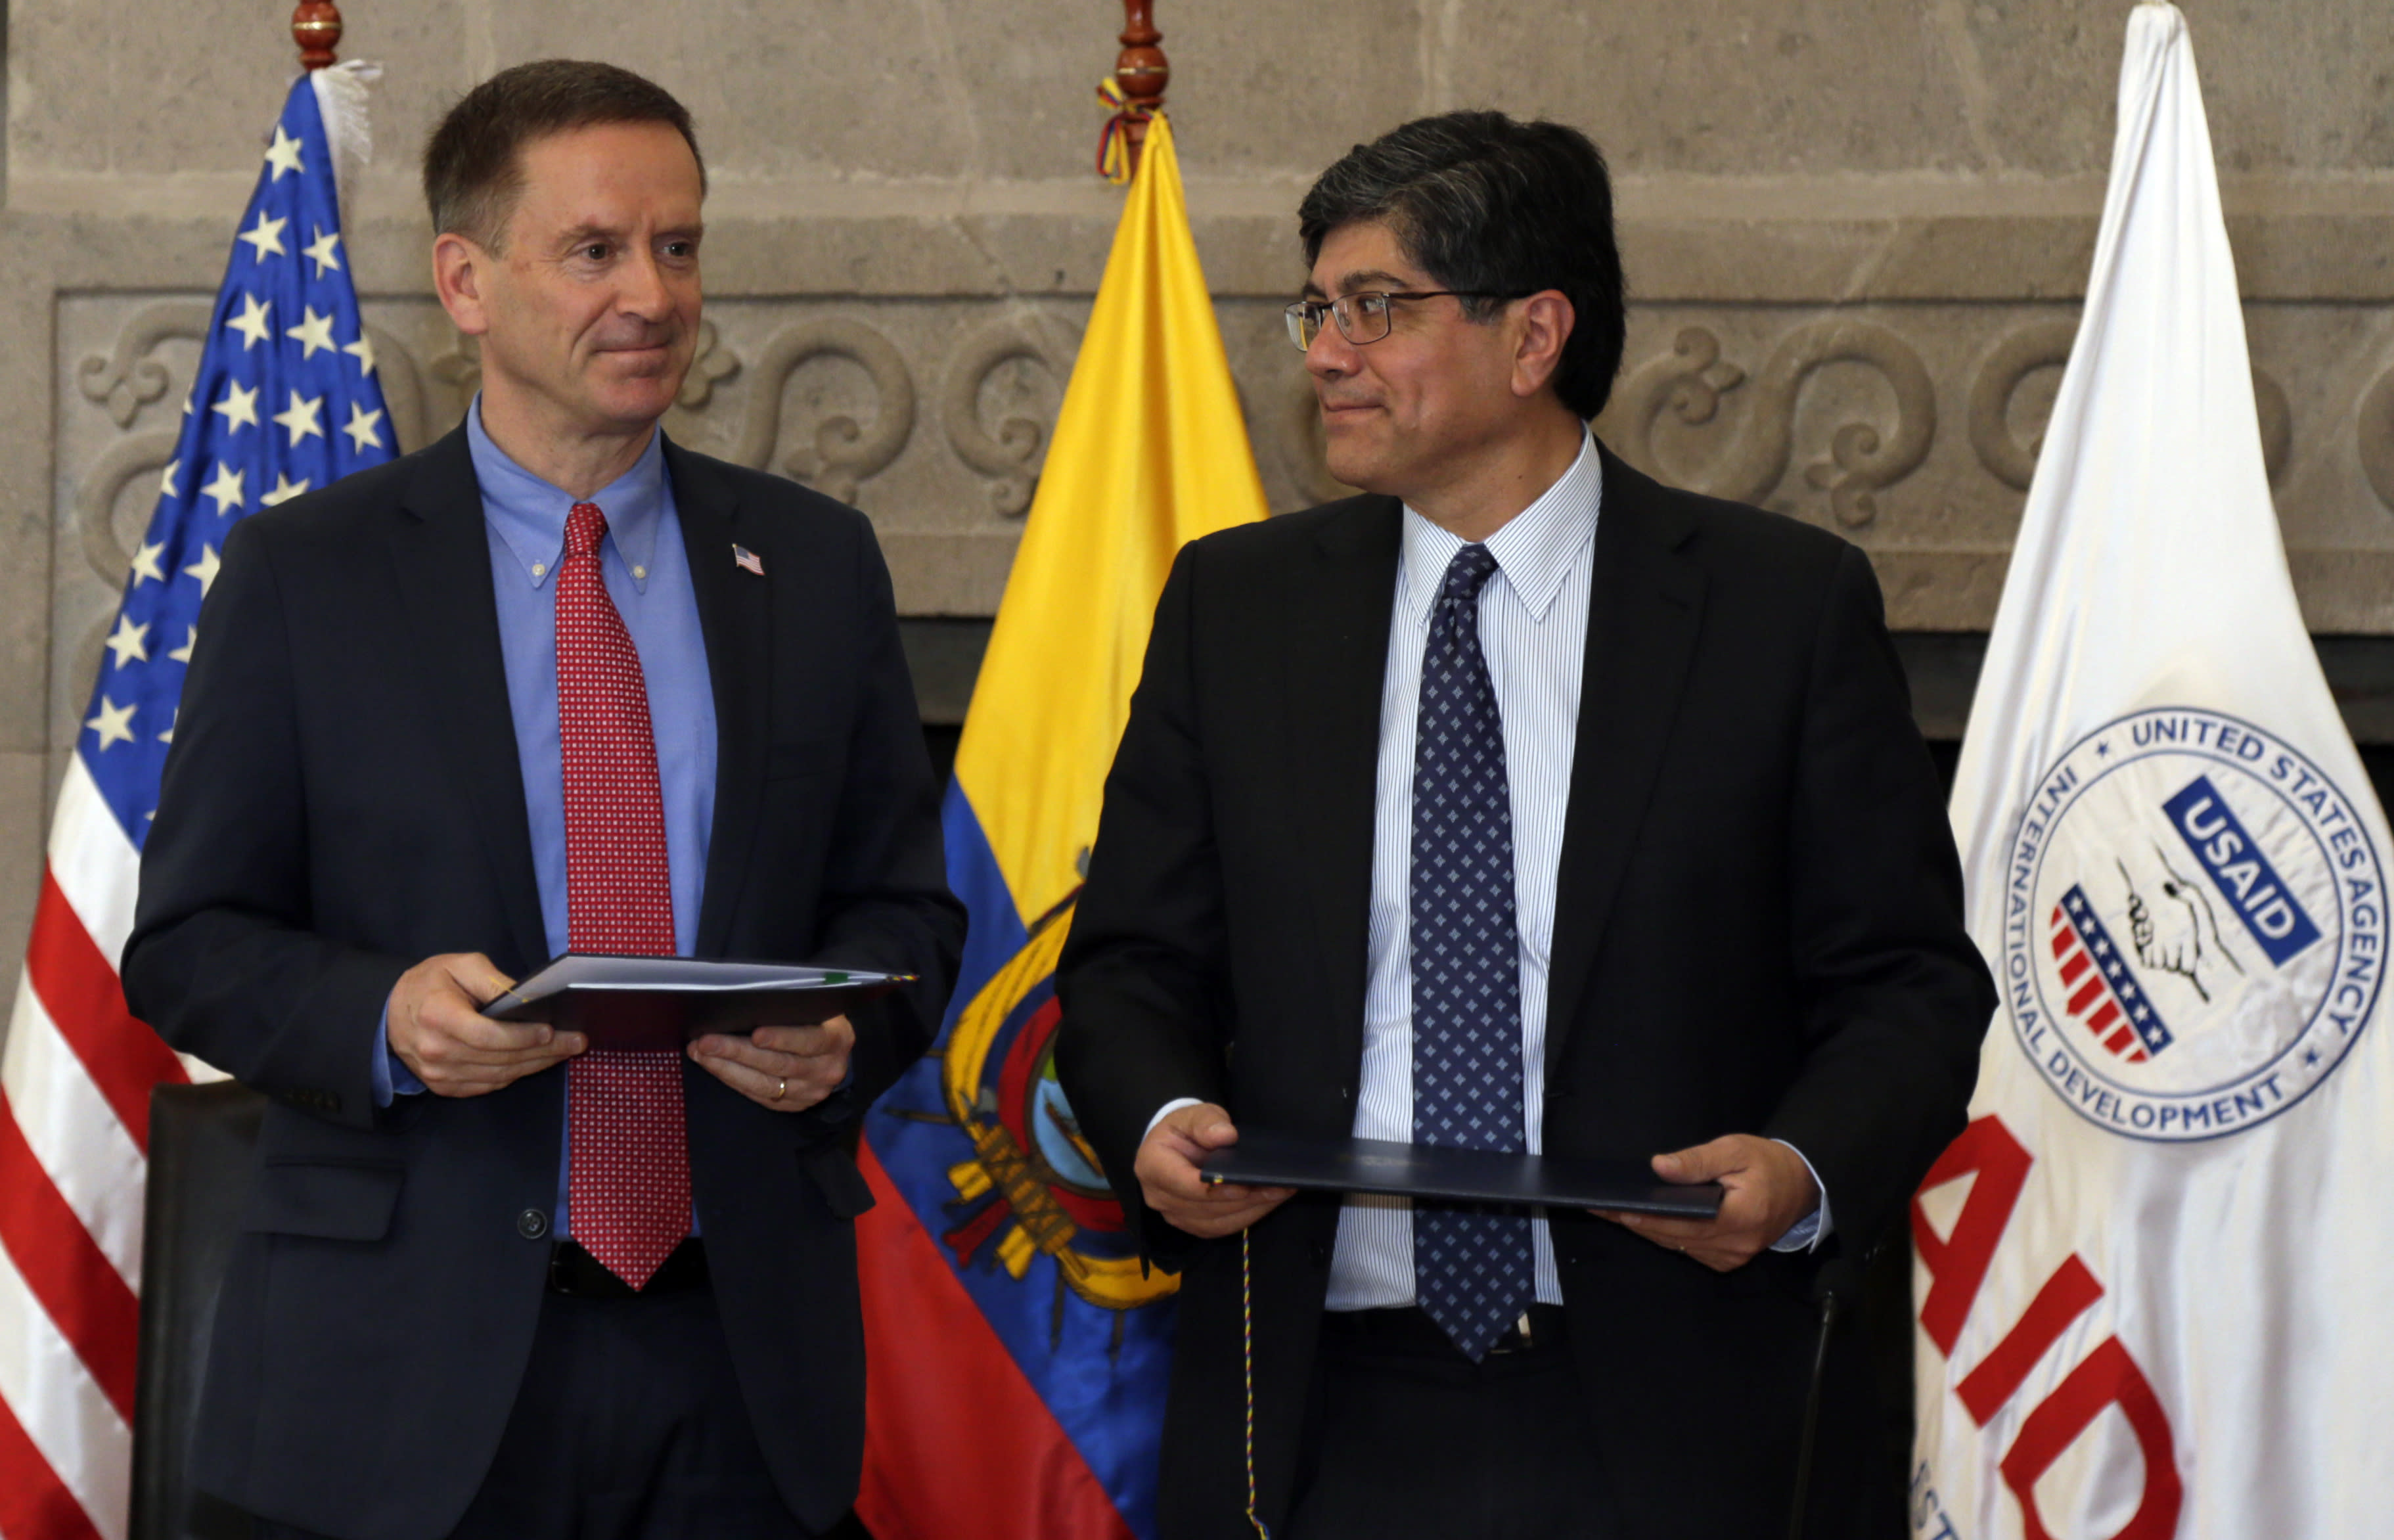 Mark Green, USAID Administrator, and Ecuador's Foreign Minister Jose Valencia, stand during a signing ceremony in Quito, Ecuador, Wednesday, May 15, 2019. USAID returns to Ecuador for the first time since being expelled from the country in 2014 by former President Rafael Correa. (AP Photo/Dolores Ochoa)